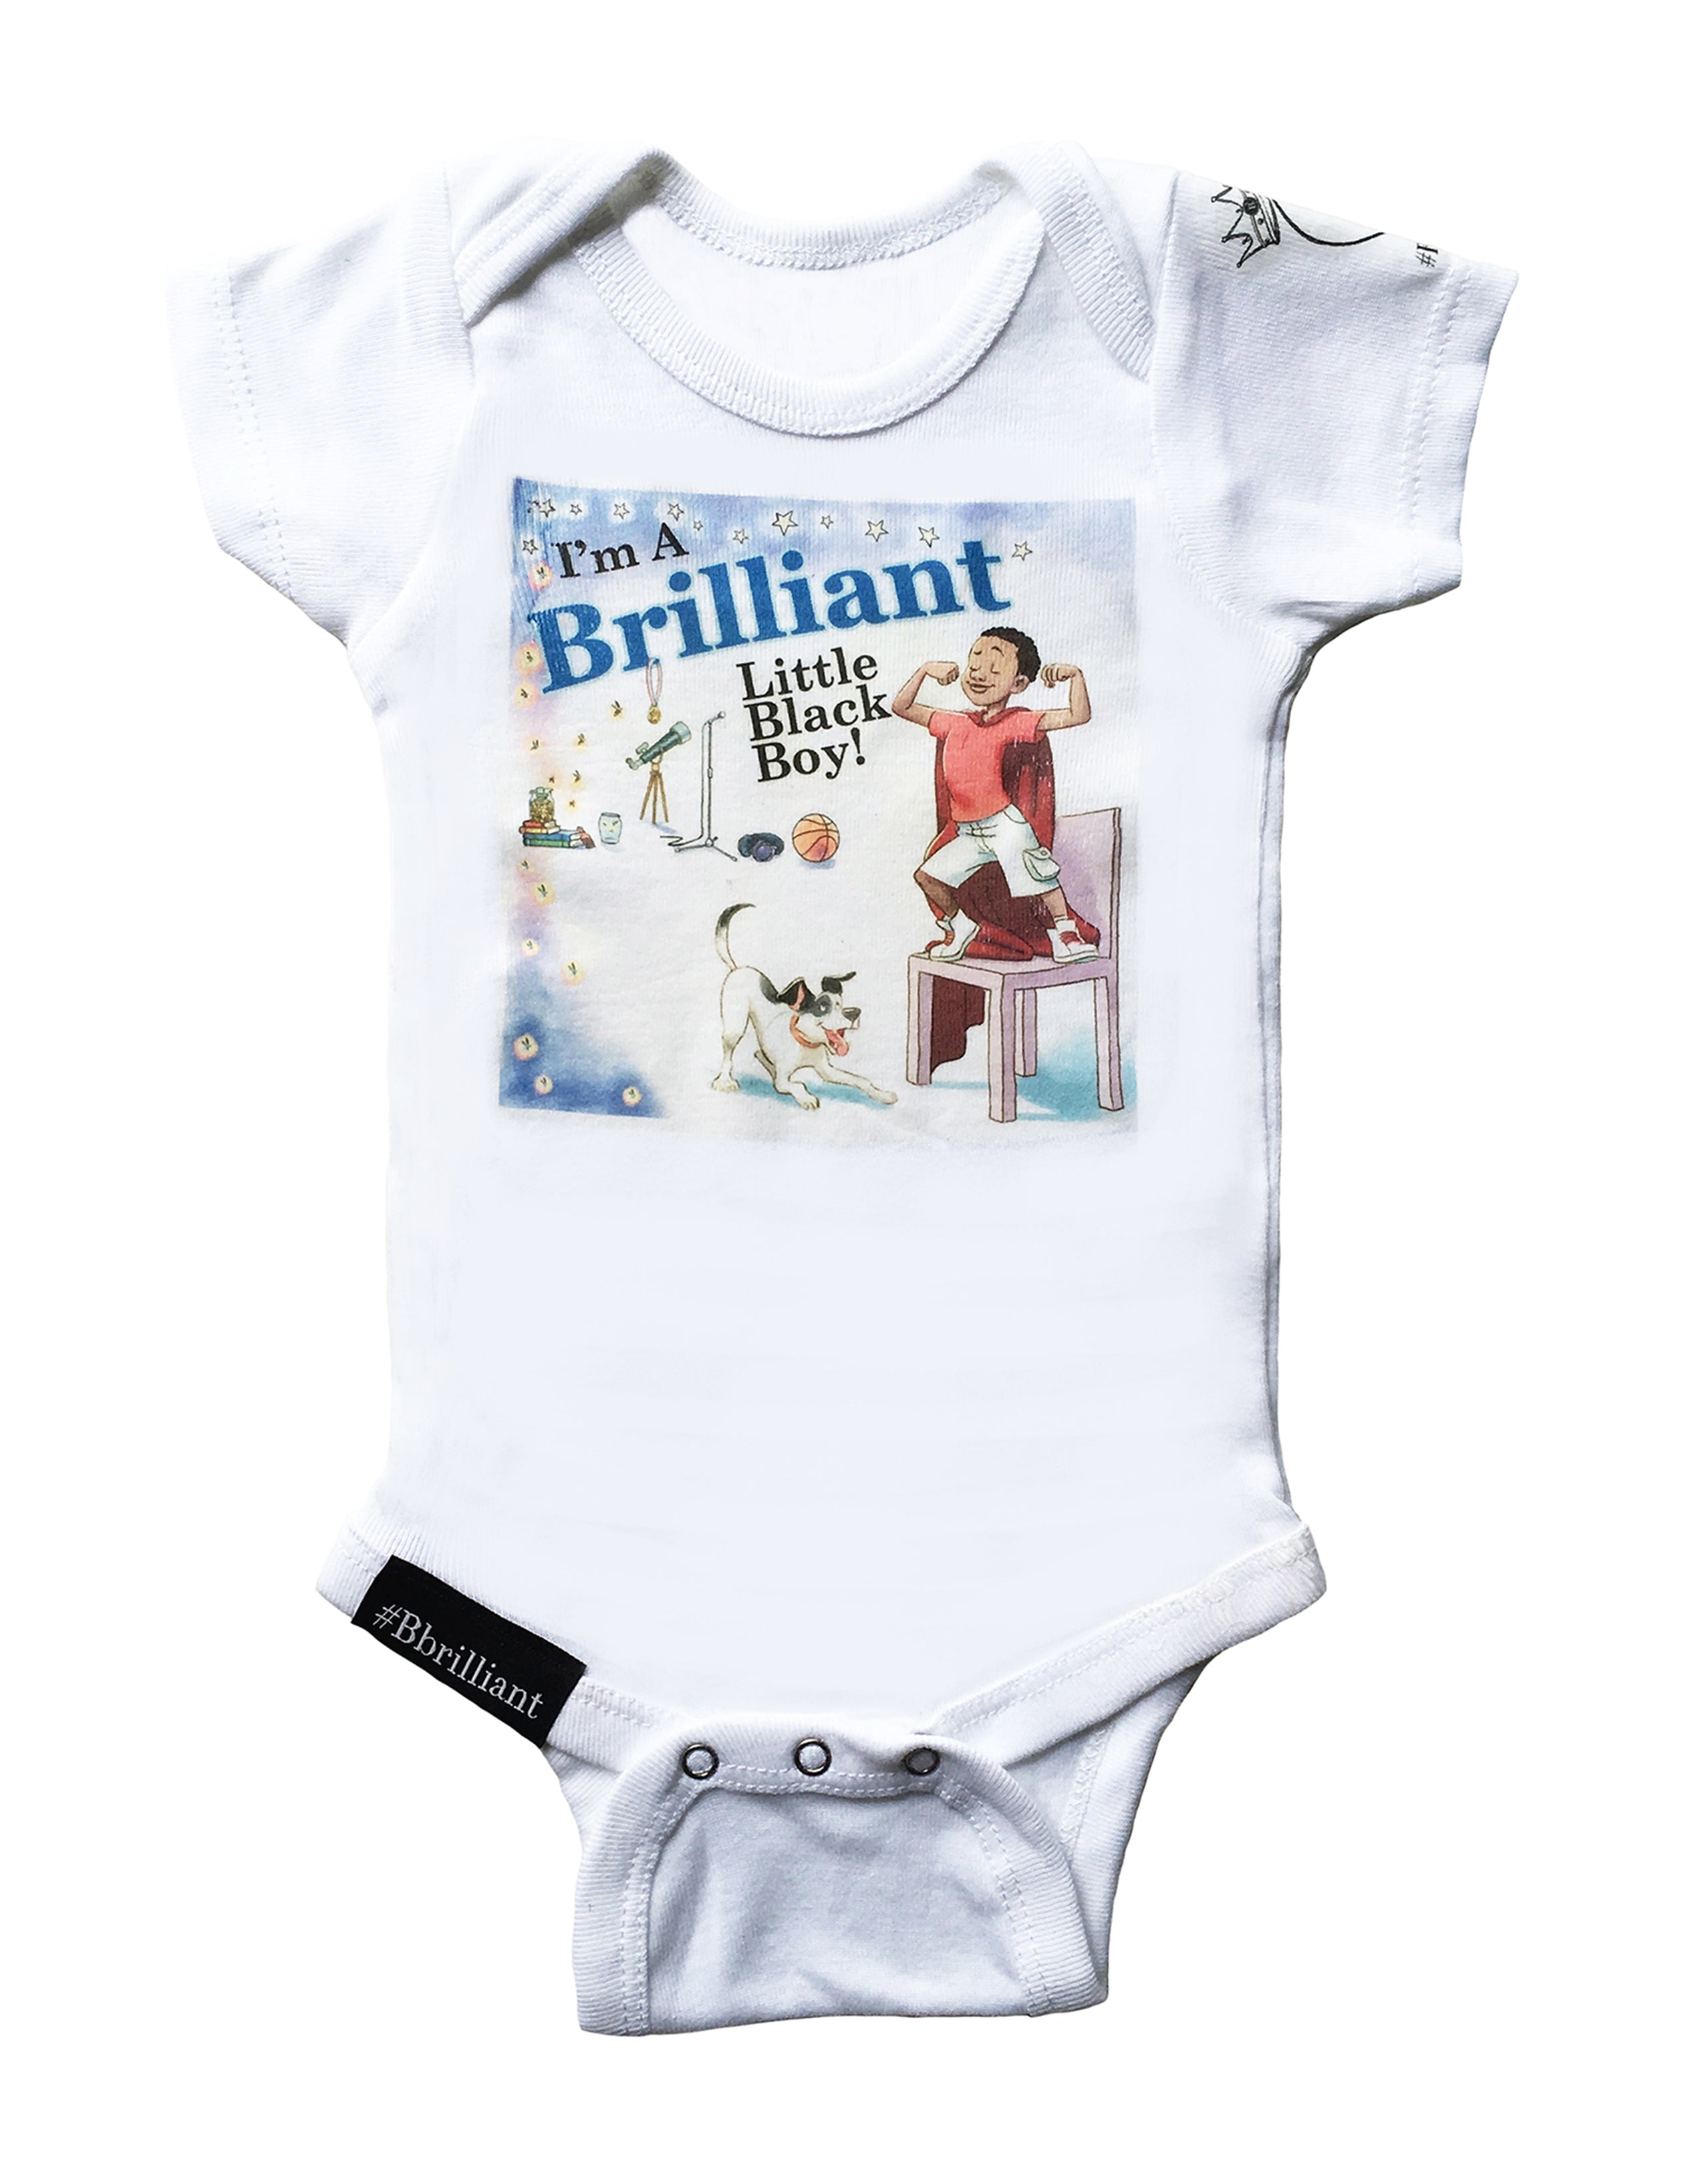 Brilliant Baby Onesies for I'm A Brilliant Little Black Boy! SOLD OUT!! -